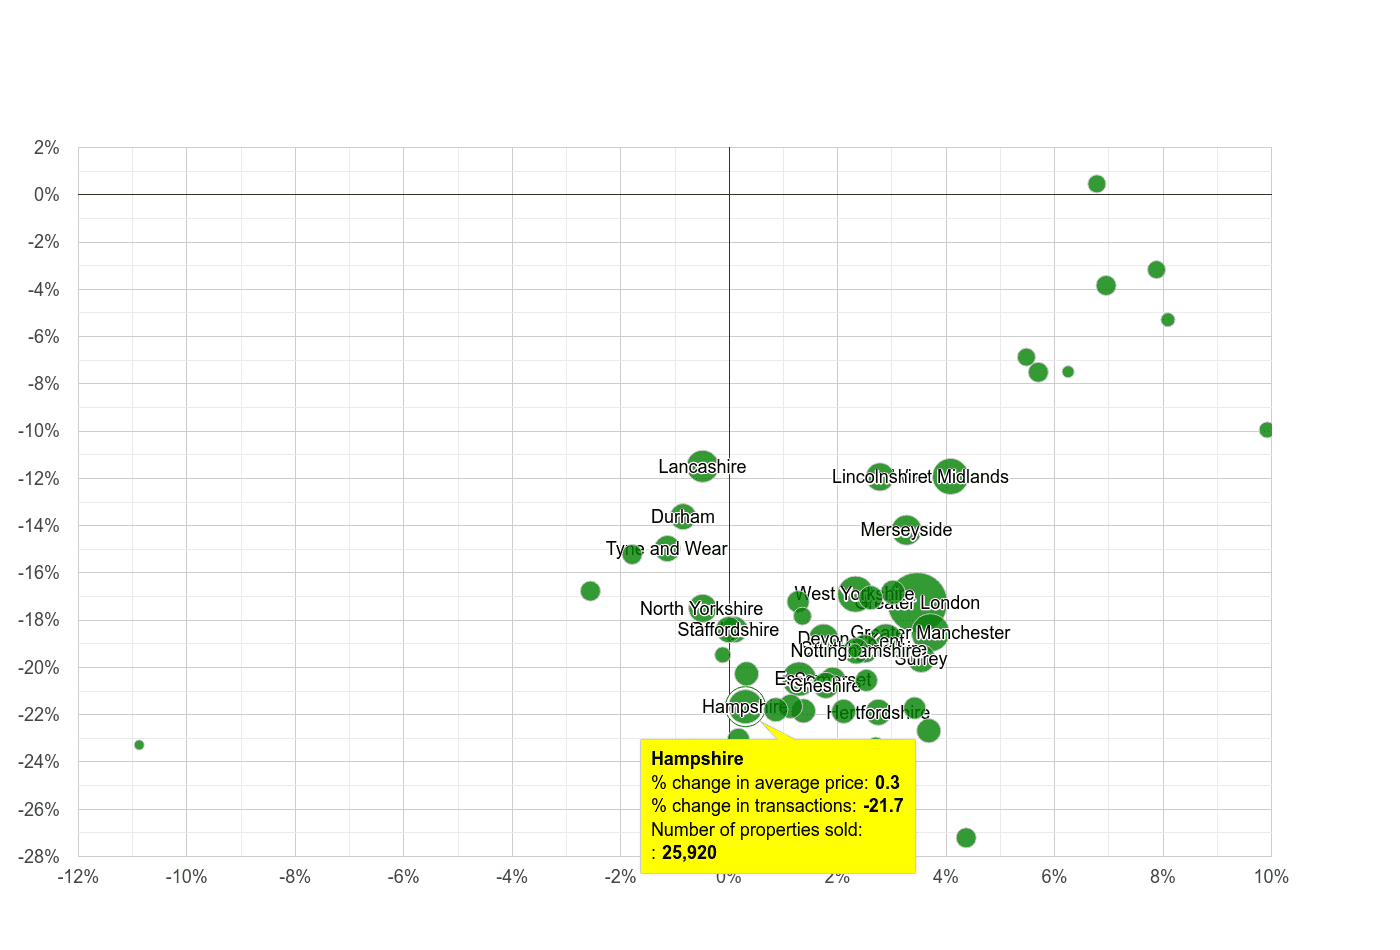 Hampshire property price and sales volume change relative to other counties